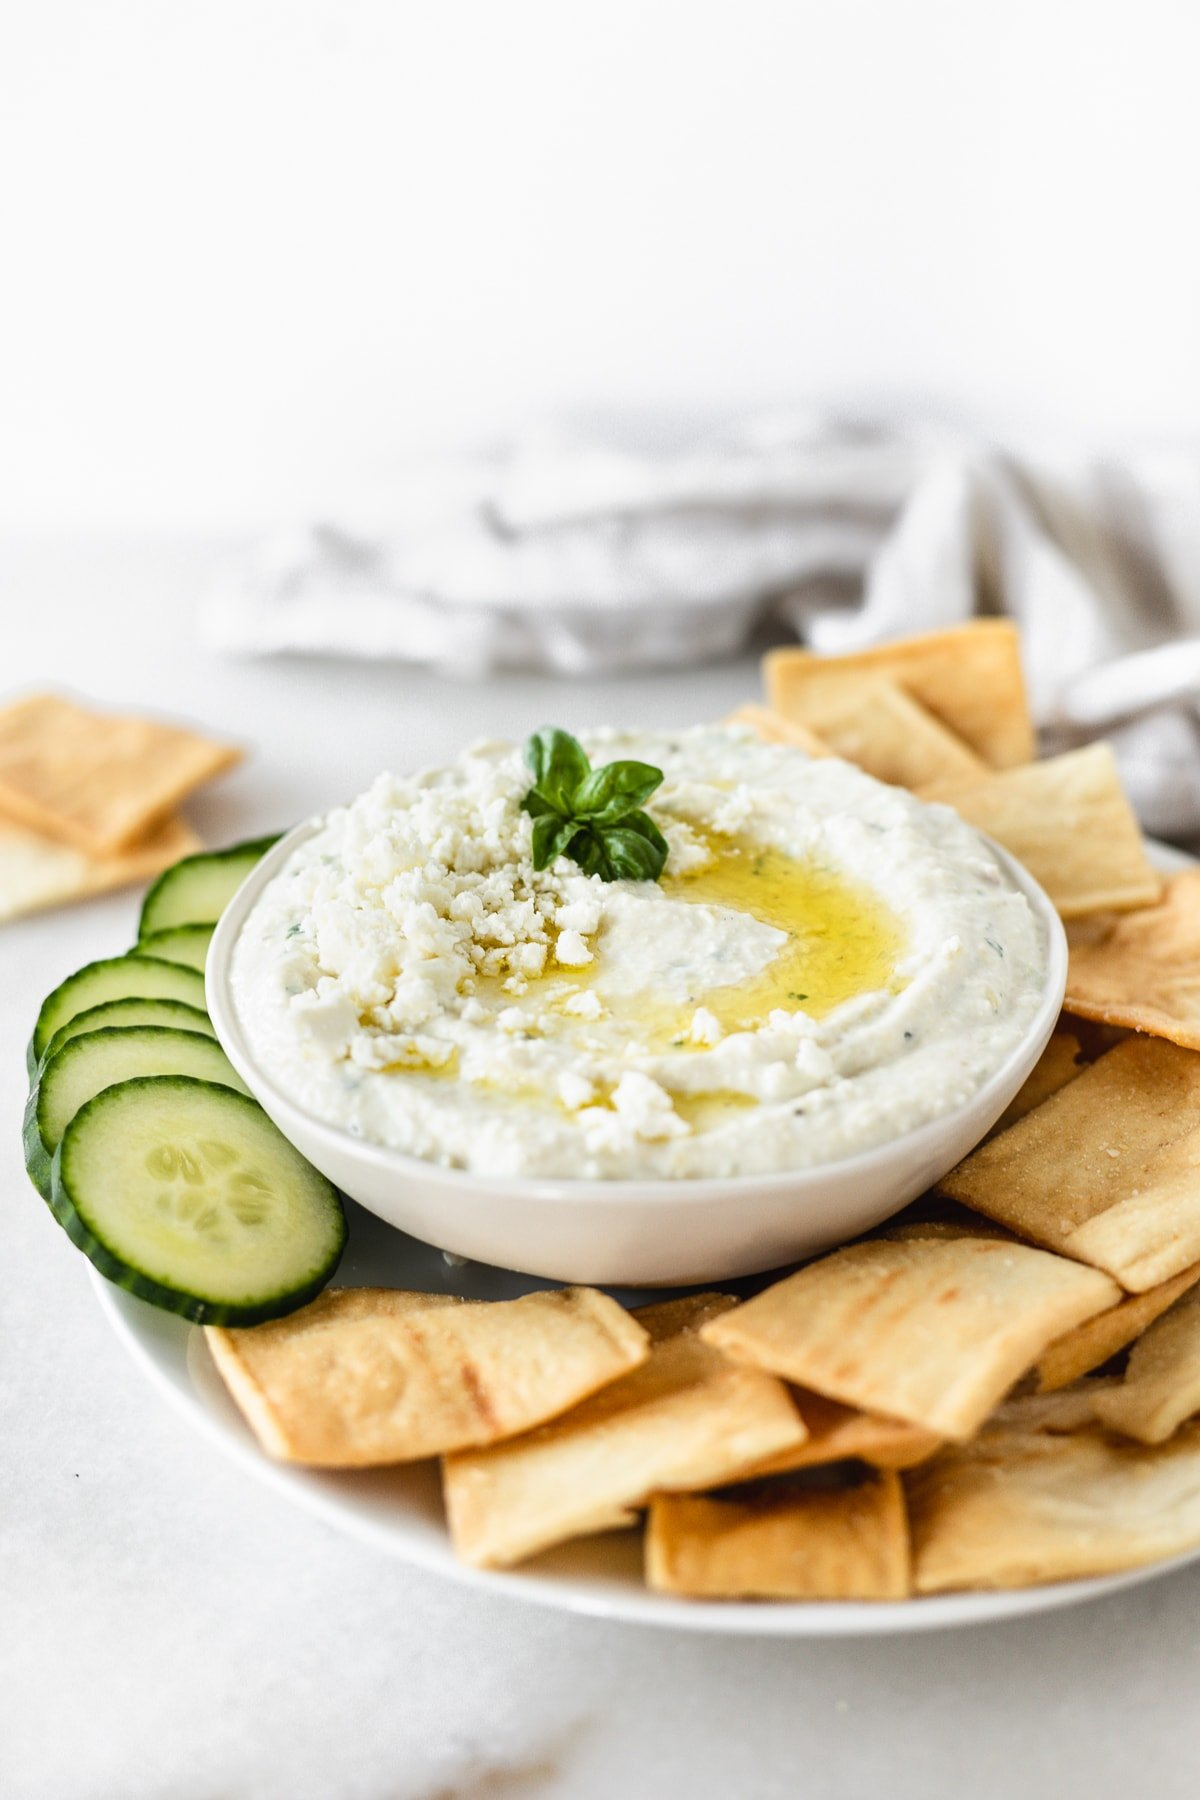 This flavorful and delicious whipped feta artichoke dip is the perfect healthy dip to whip up for summer entertaining! (vegetarian, gluten-free) |Sponsored by @oceanmistfarms| via livelytable.com